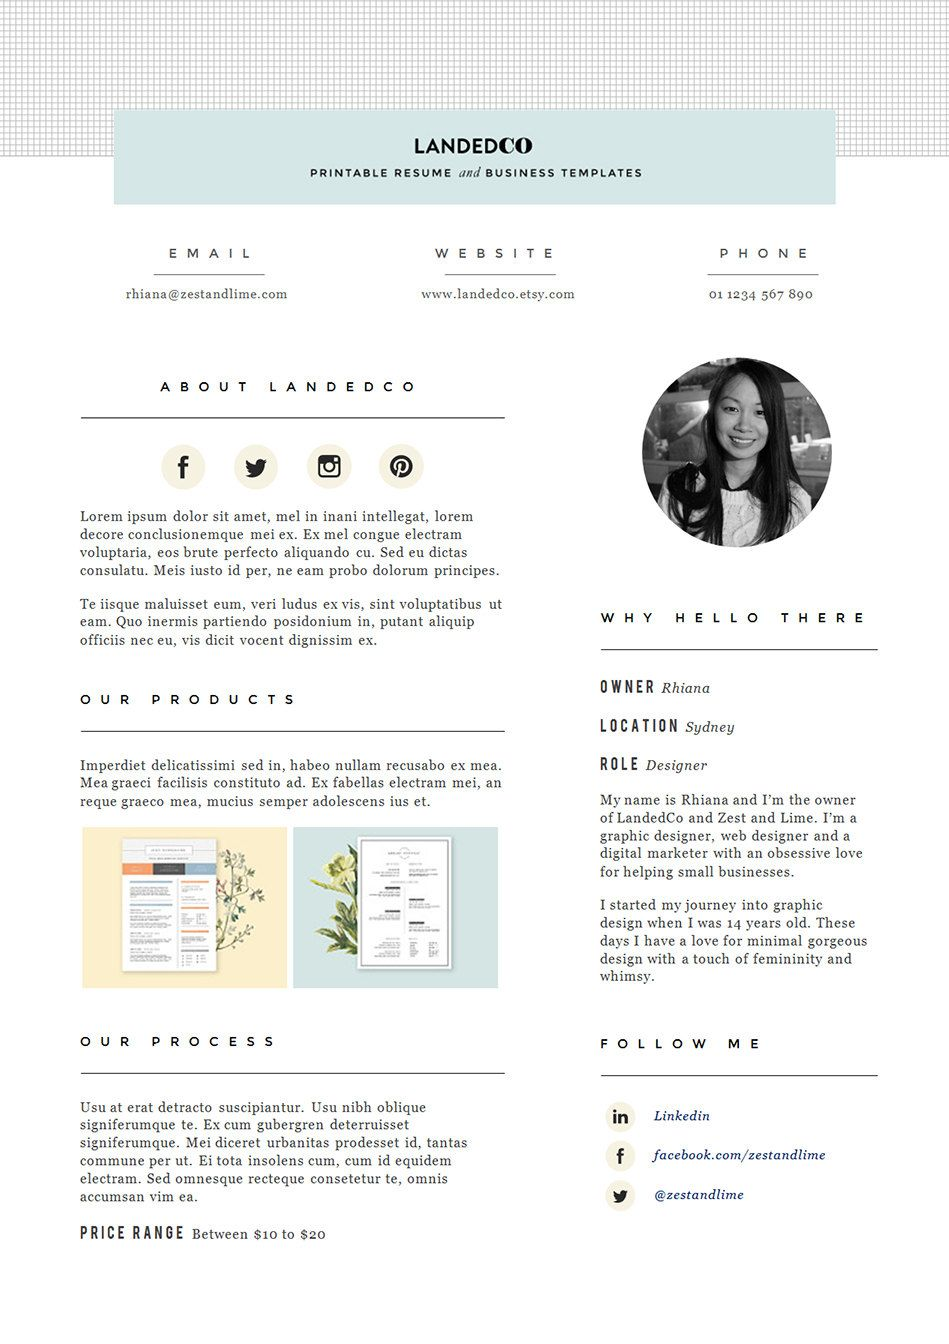 Media Kit template Press Kit design Pitch kit for Etsy by landedCo ...